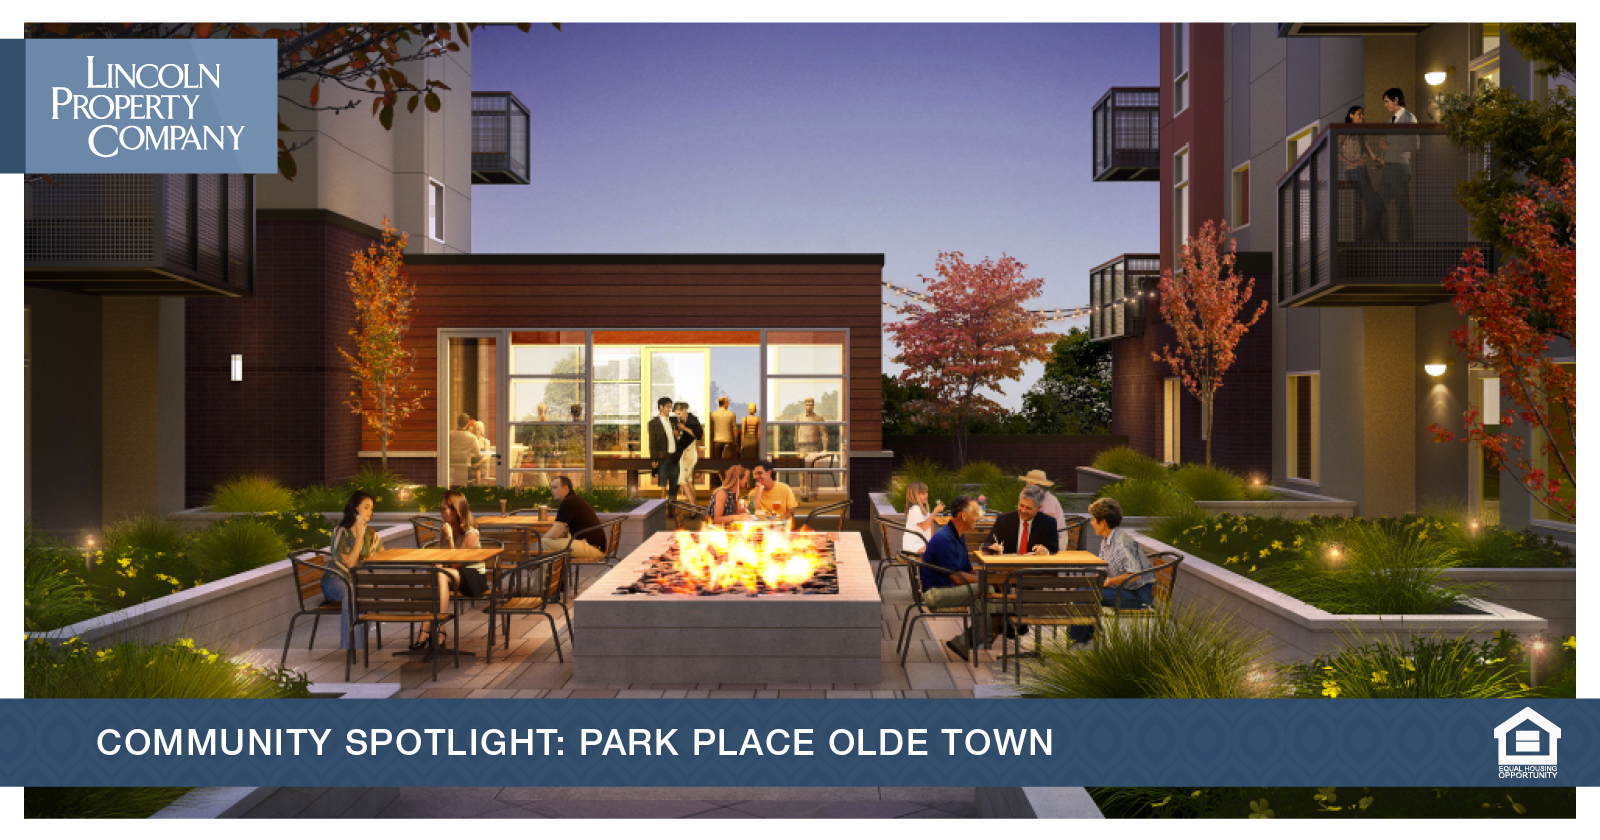 Park Place Olde Town offers thoughtfully designed, luxurious apartments located on beautiful McIlvoy Park in the heart of vibrant Olde Town #Arvada. This community is just steps away from the area's best shops and restaurants as well as the new RTD Olde Town Station. Residents will enjoy walk-in closets, courtyards with gorgeous views, and more in a very walkable area.